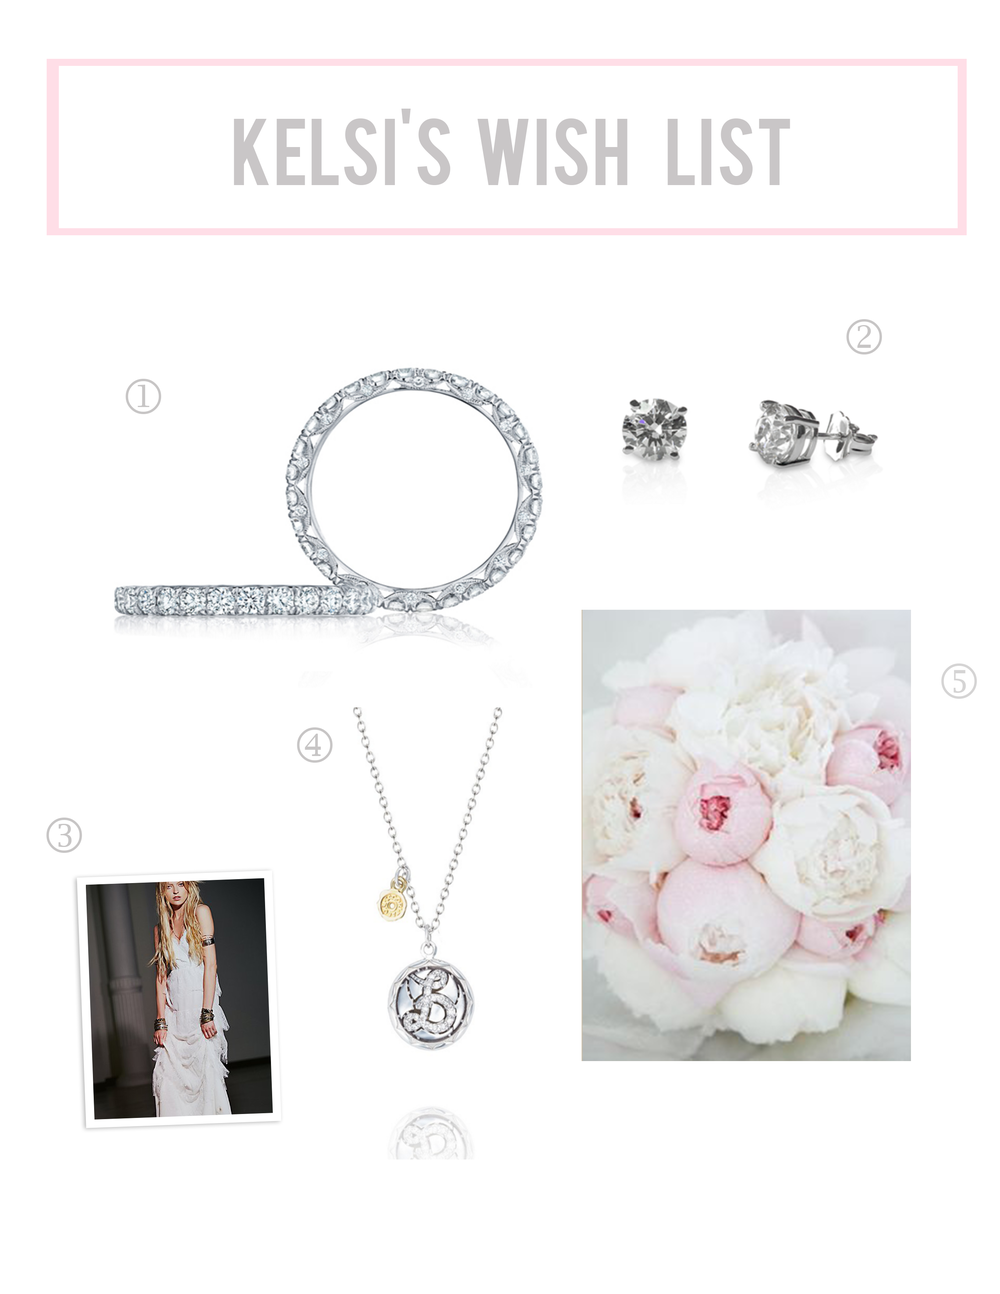 1. Tacori Petite Crescent wedding band  2. Diamond stud earrings  3. Free People tiered lace maxi dress 4. Tacori Love Letter necklace 5. Peonies